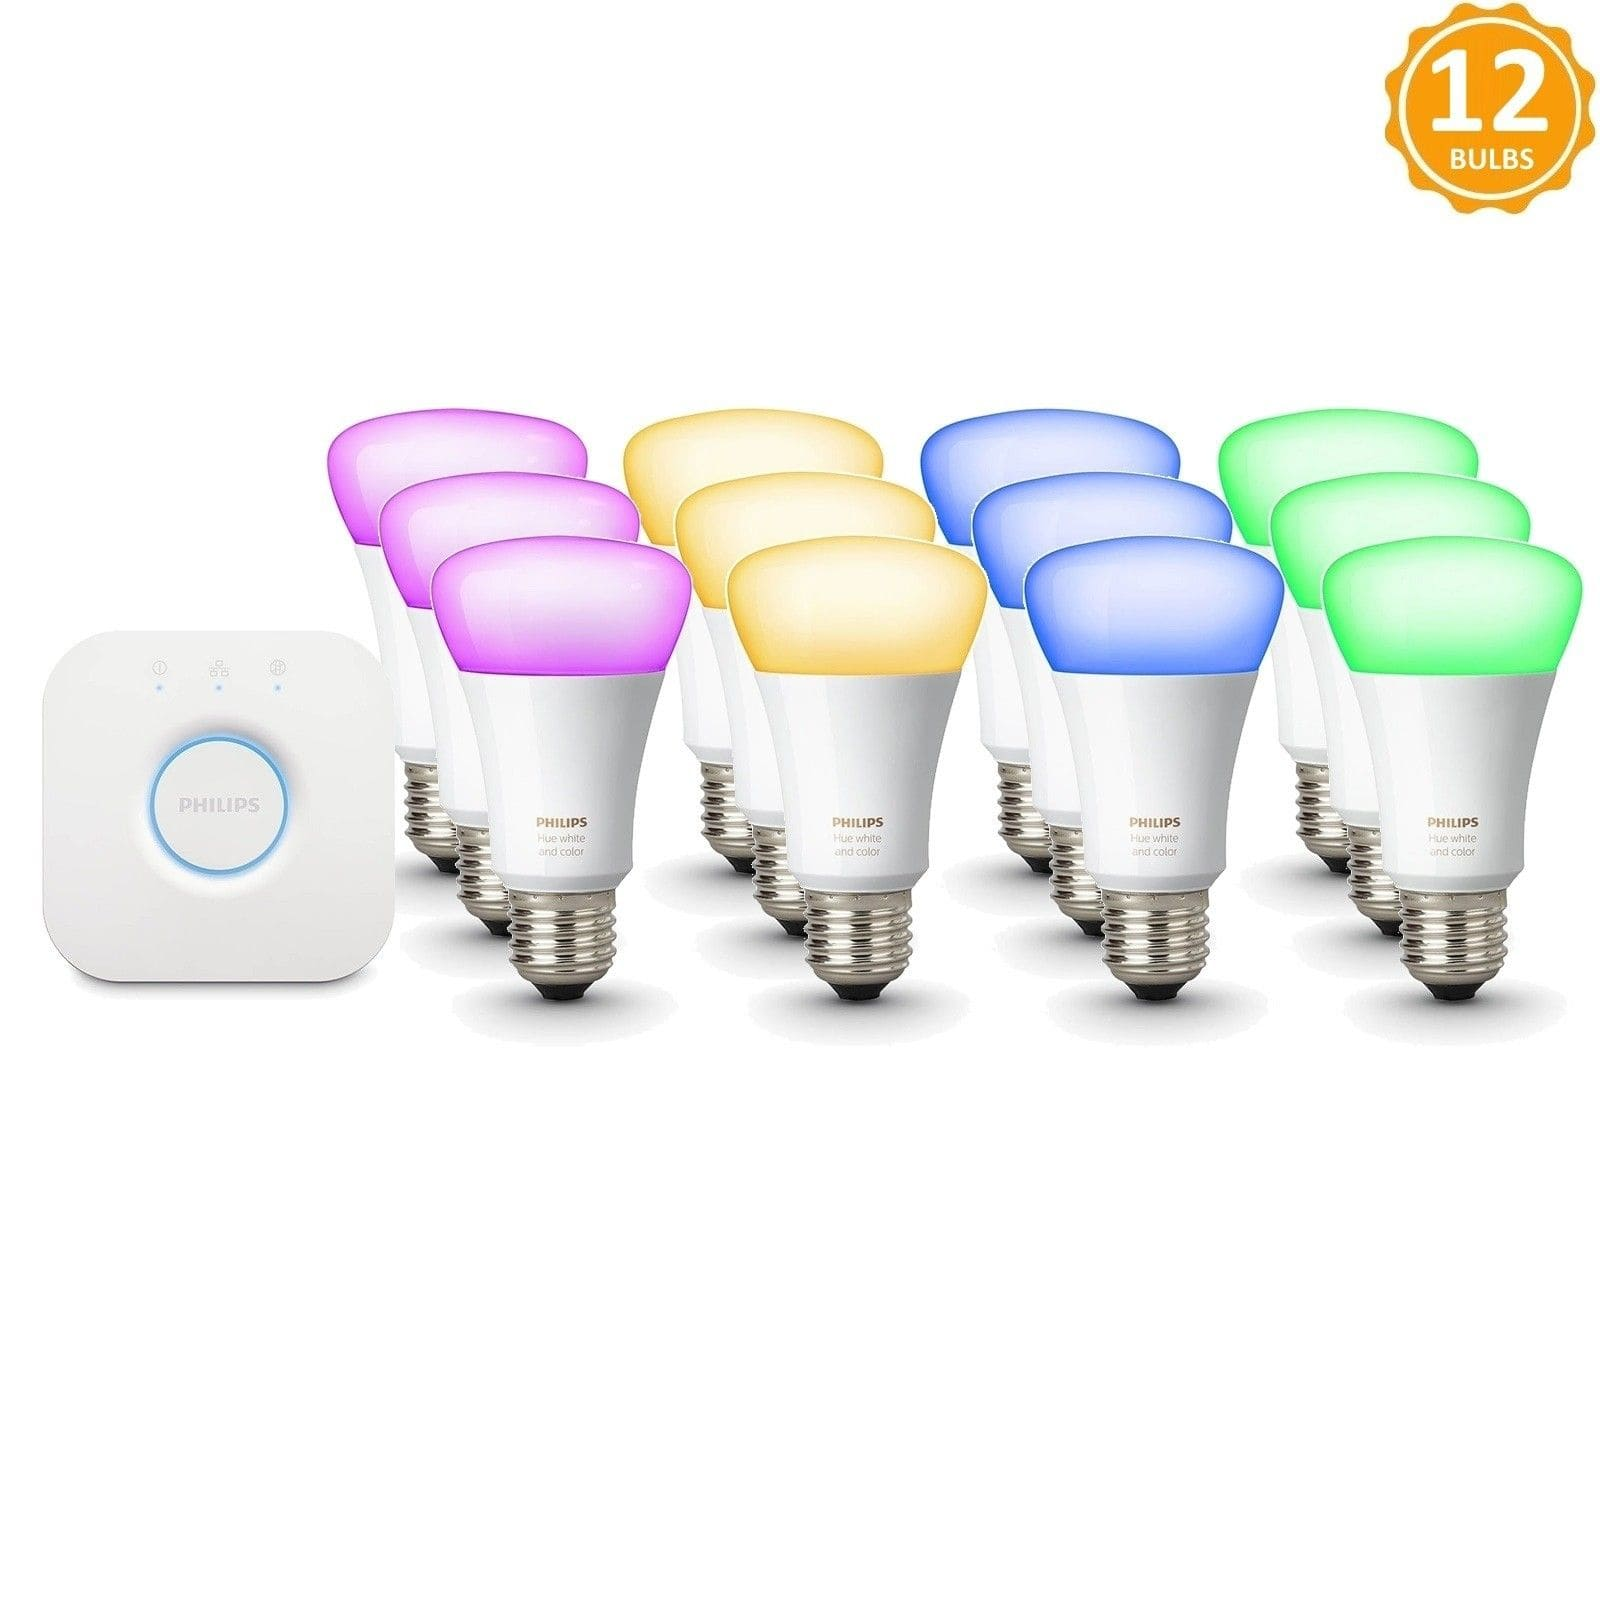 NEW Philips HUE White and Color Ambiance Bulb 3rd Generation